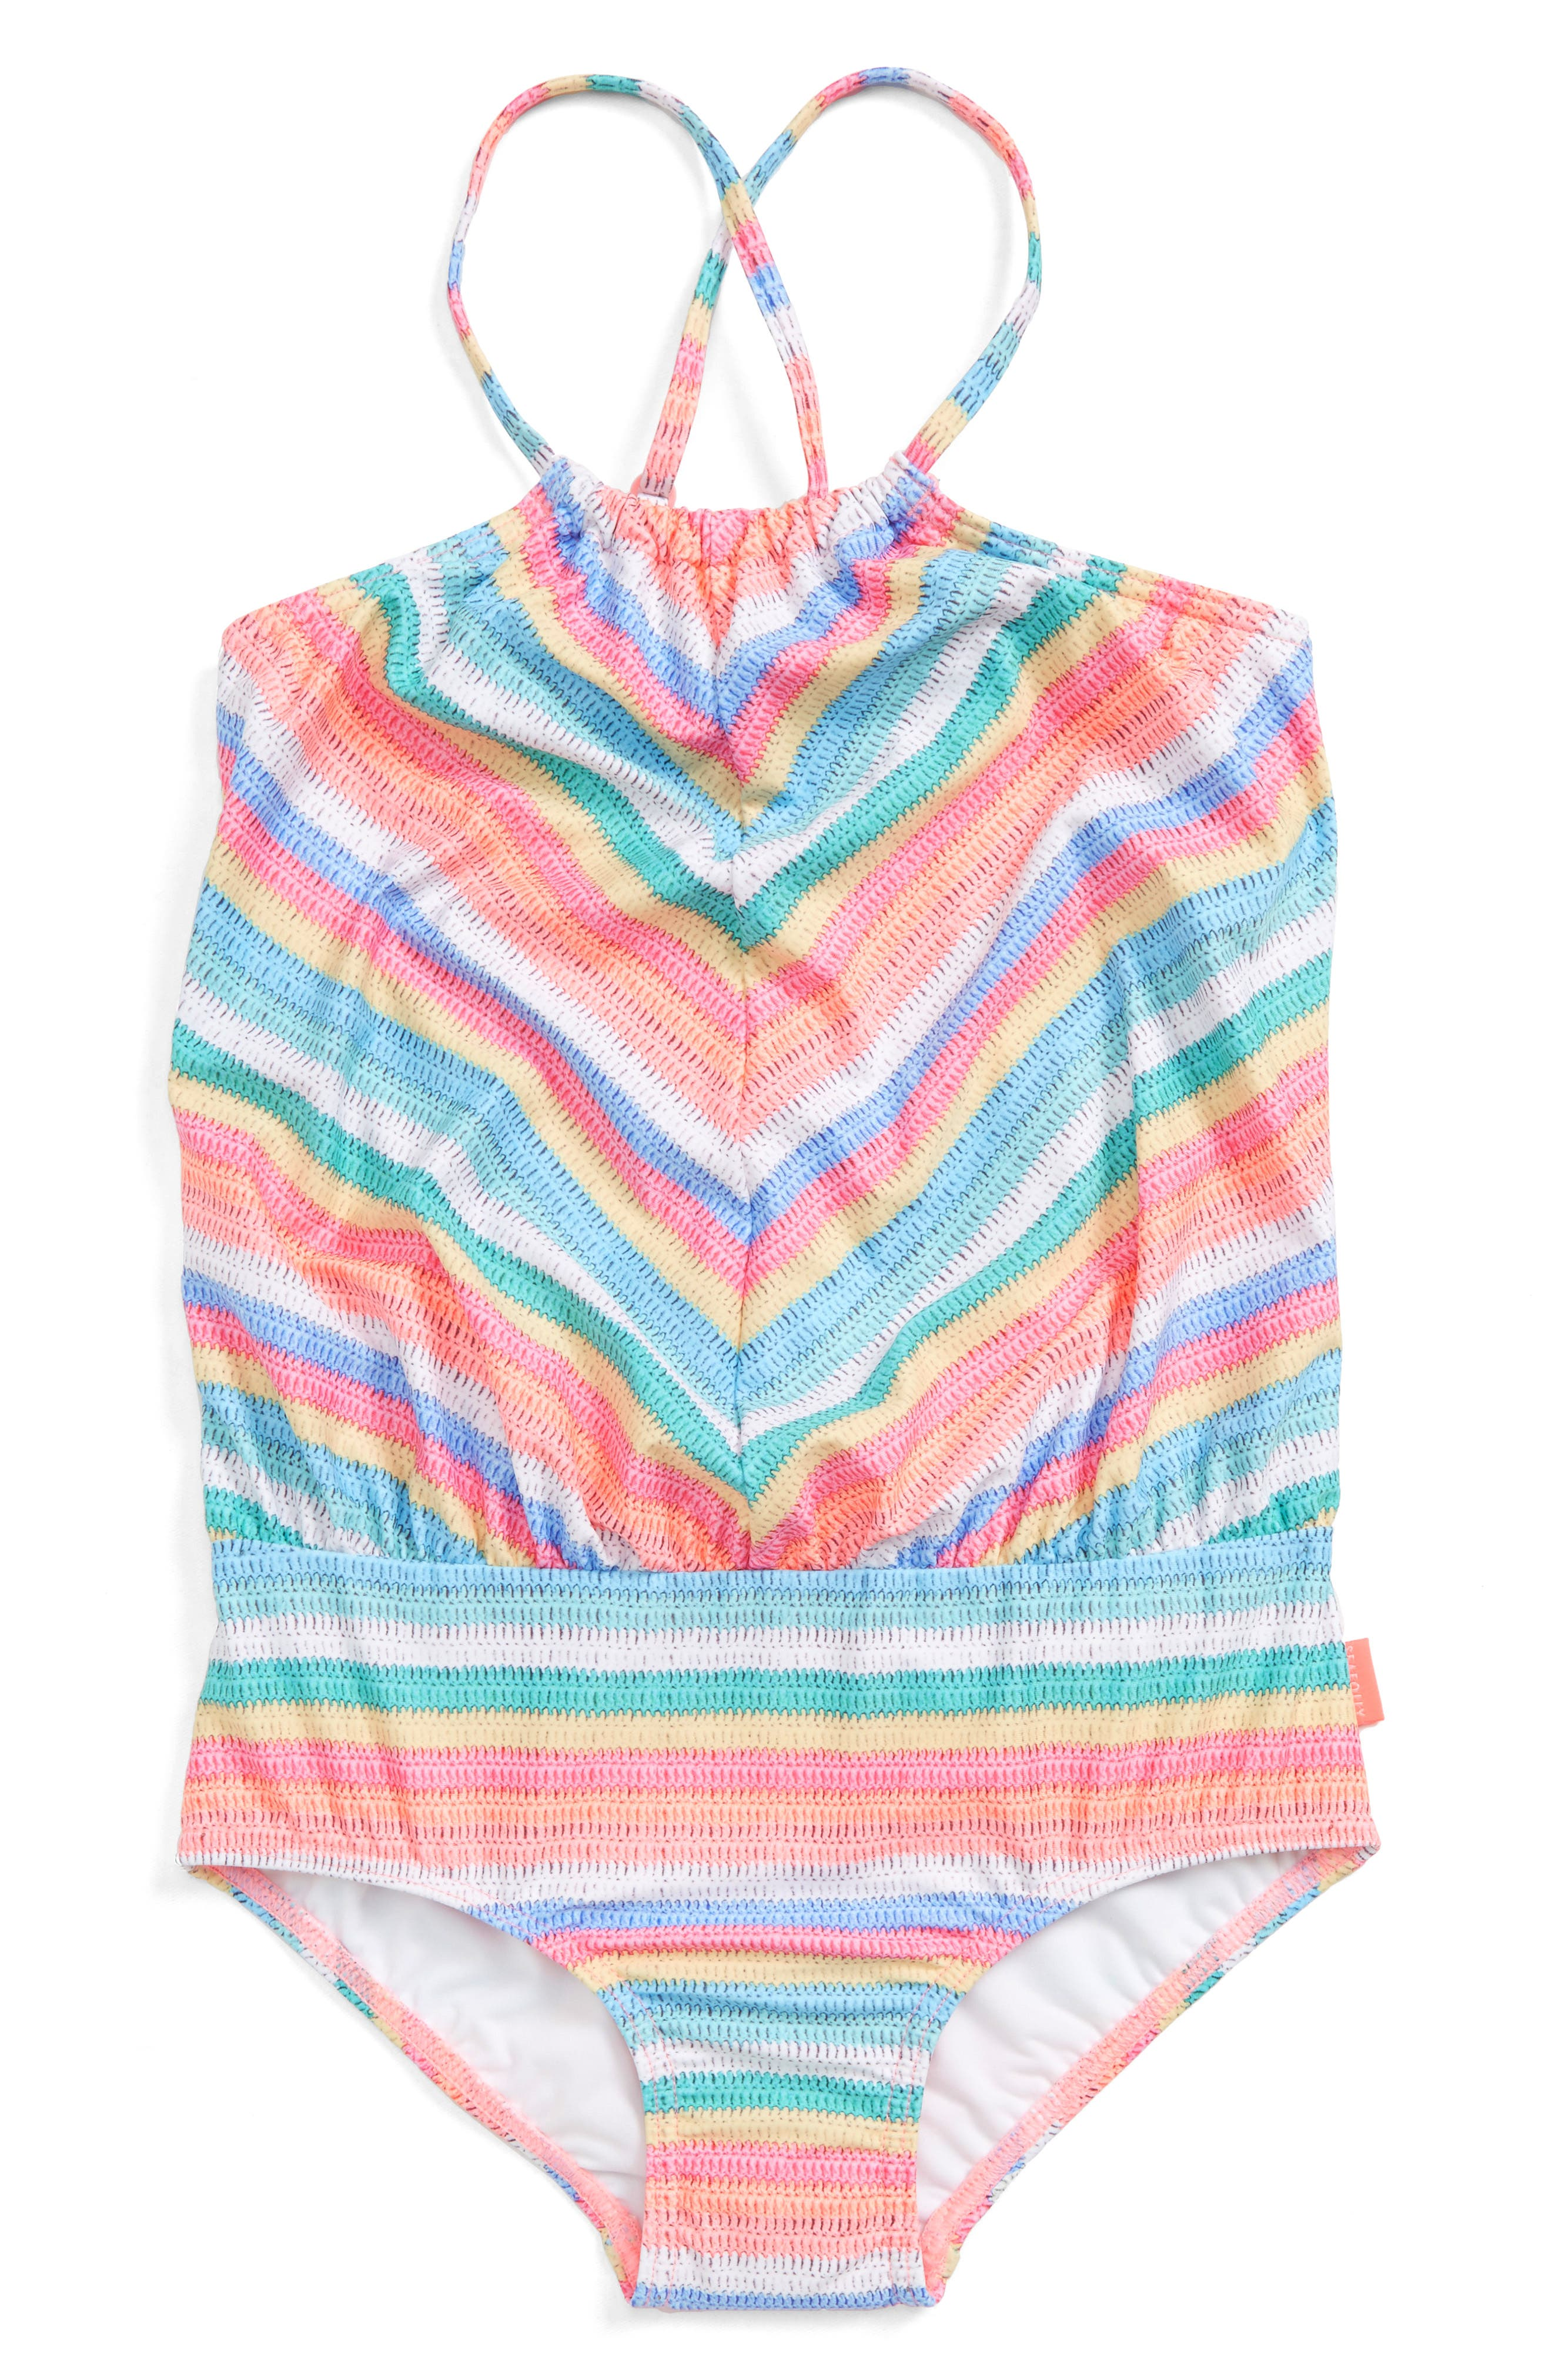 Candy Pop One-Piece Swimsuit,                             Main thumbnail 1, color,                             650